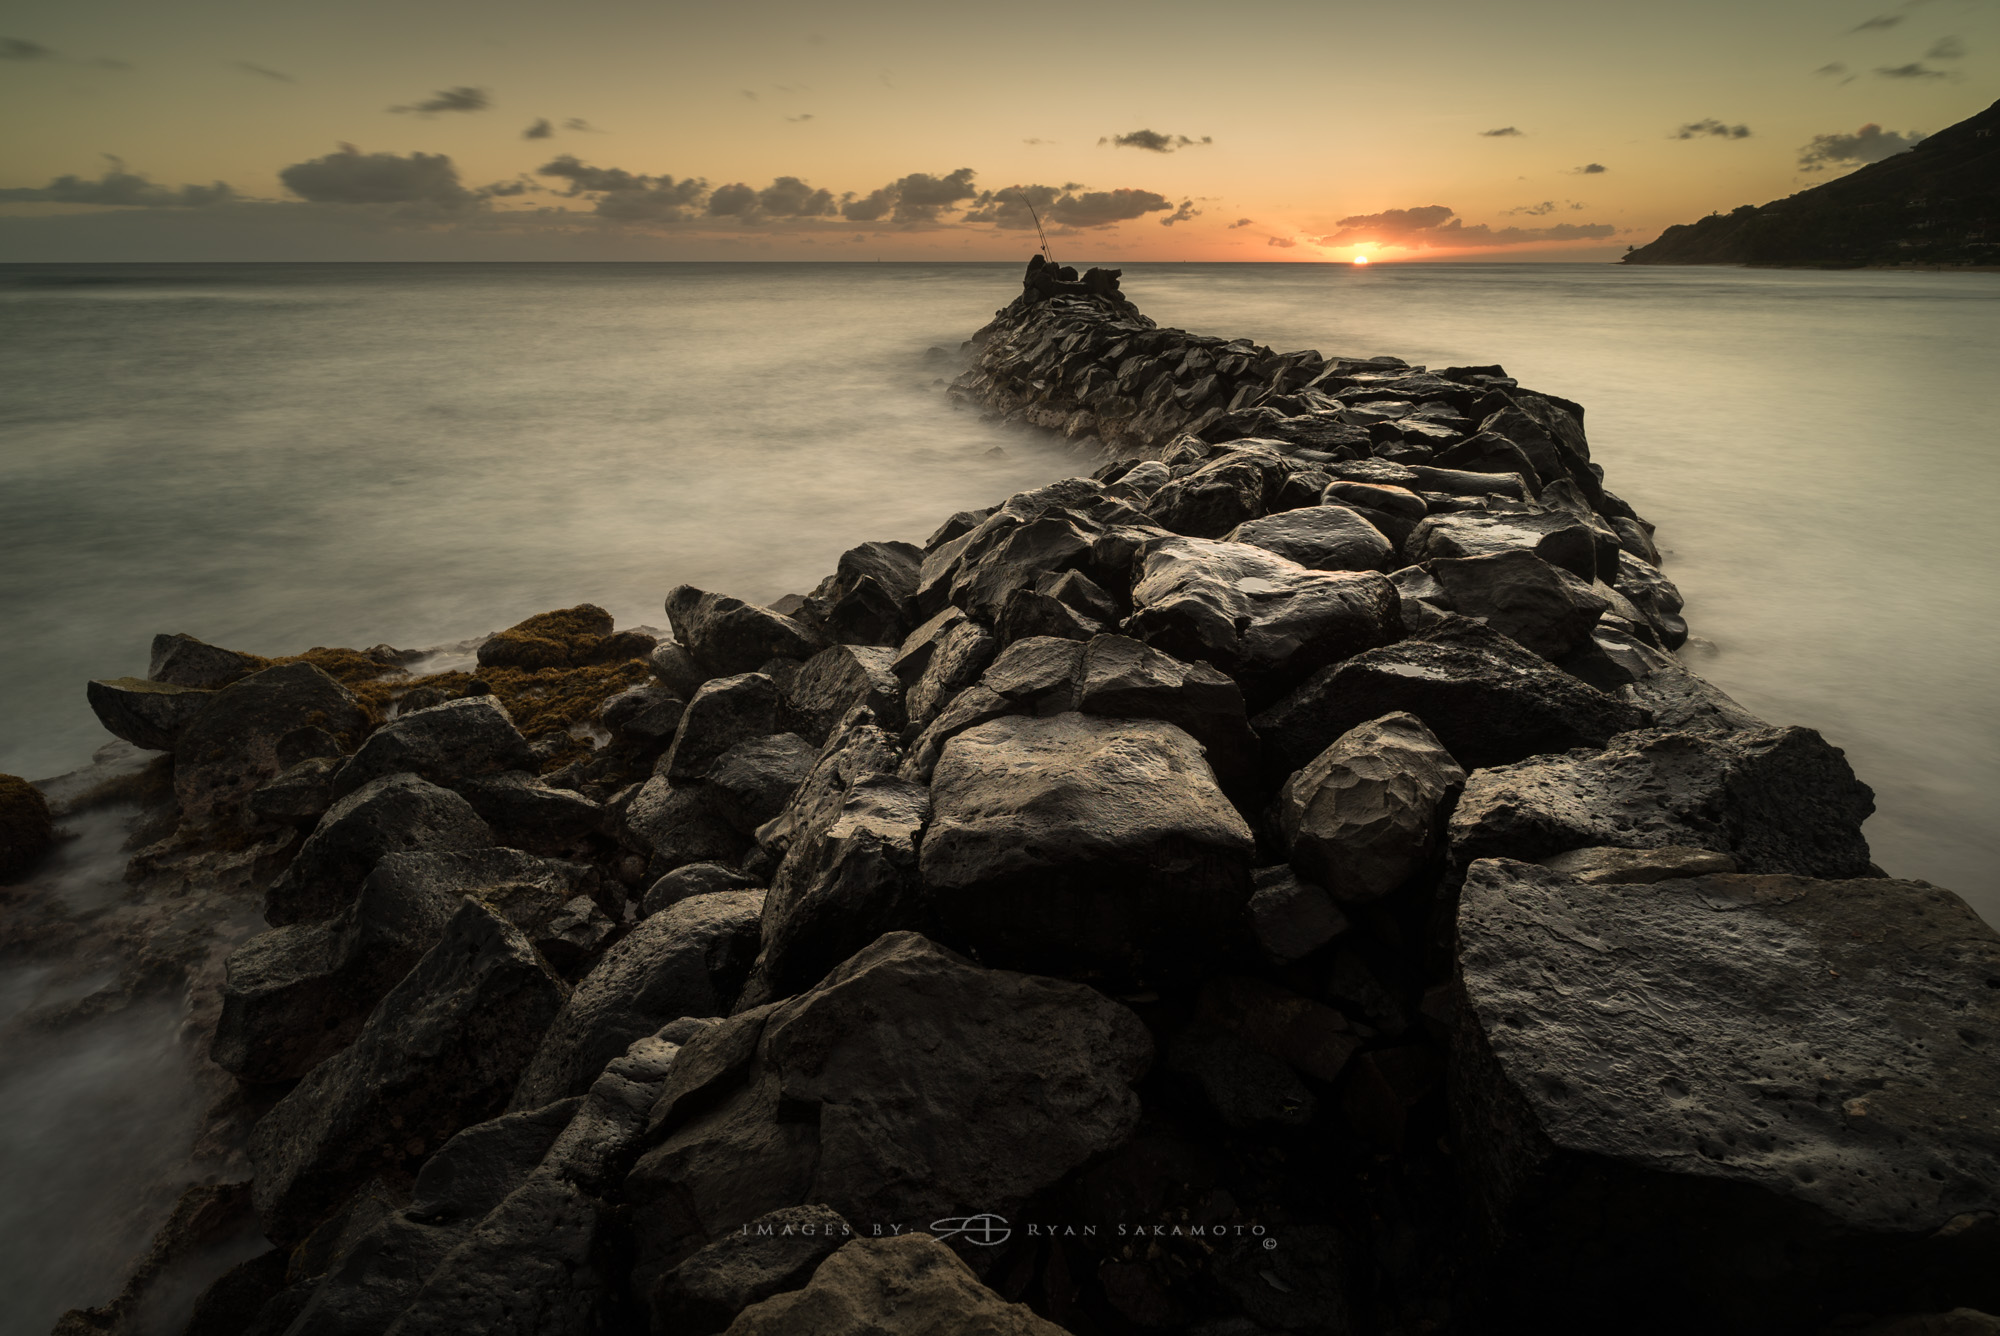 Sunrise Photography Collection Lee Filter Big Stopper & 3 stop medium grad Sony A7S II |  13 sec. |  f/8  |  ISO 50  |  Zeiss Batis 2.8/18mm  Edited in Lightroom CC 2015  Copyright 2016 Ryan Sakamoto, All rights reserved